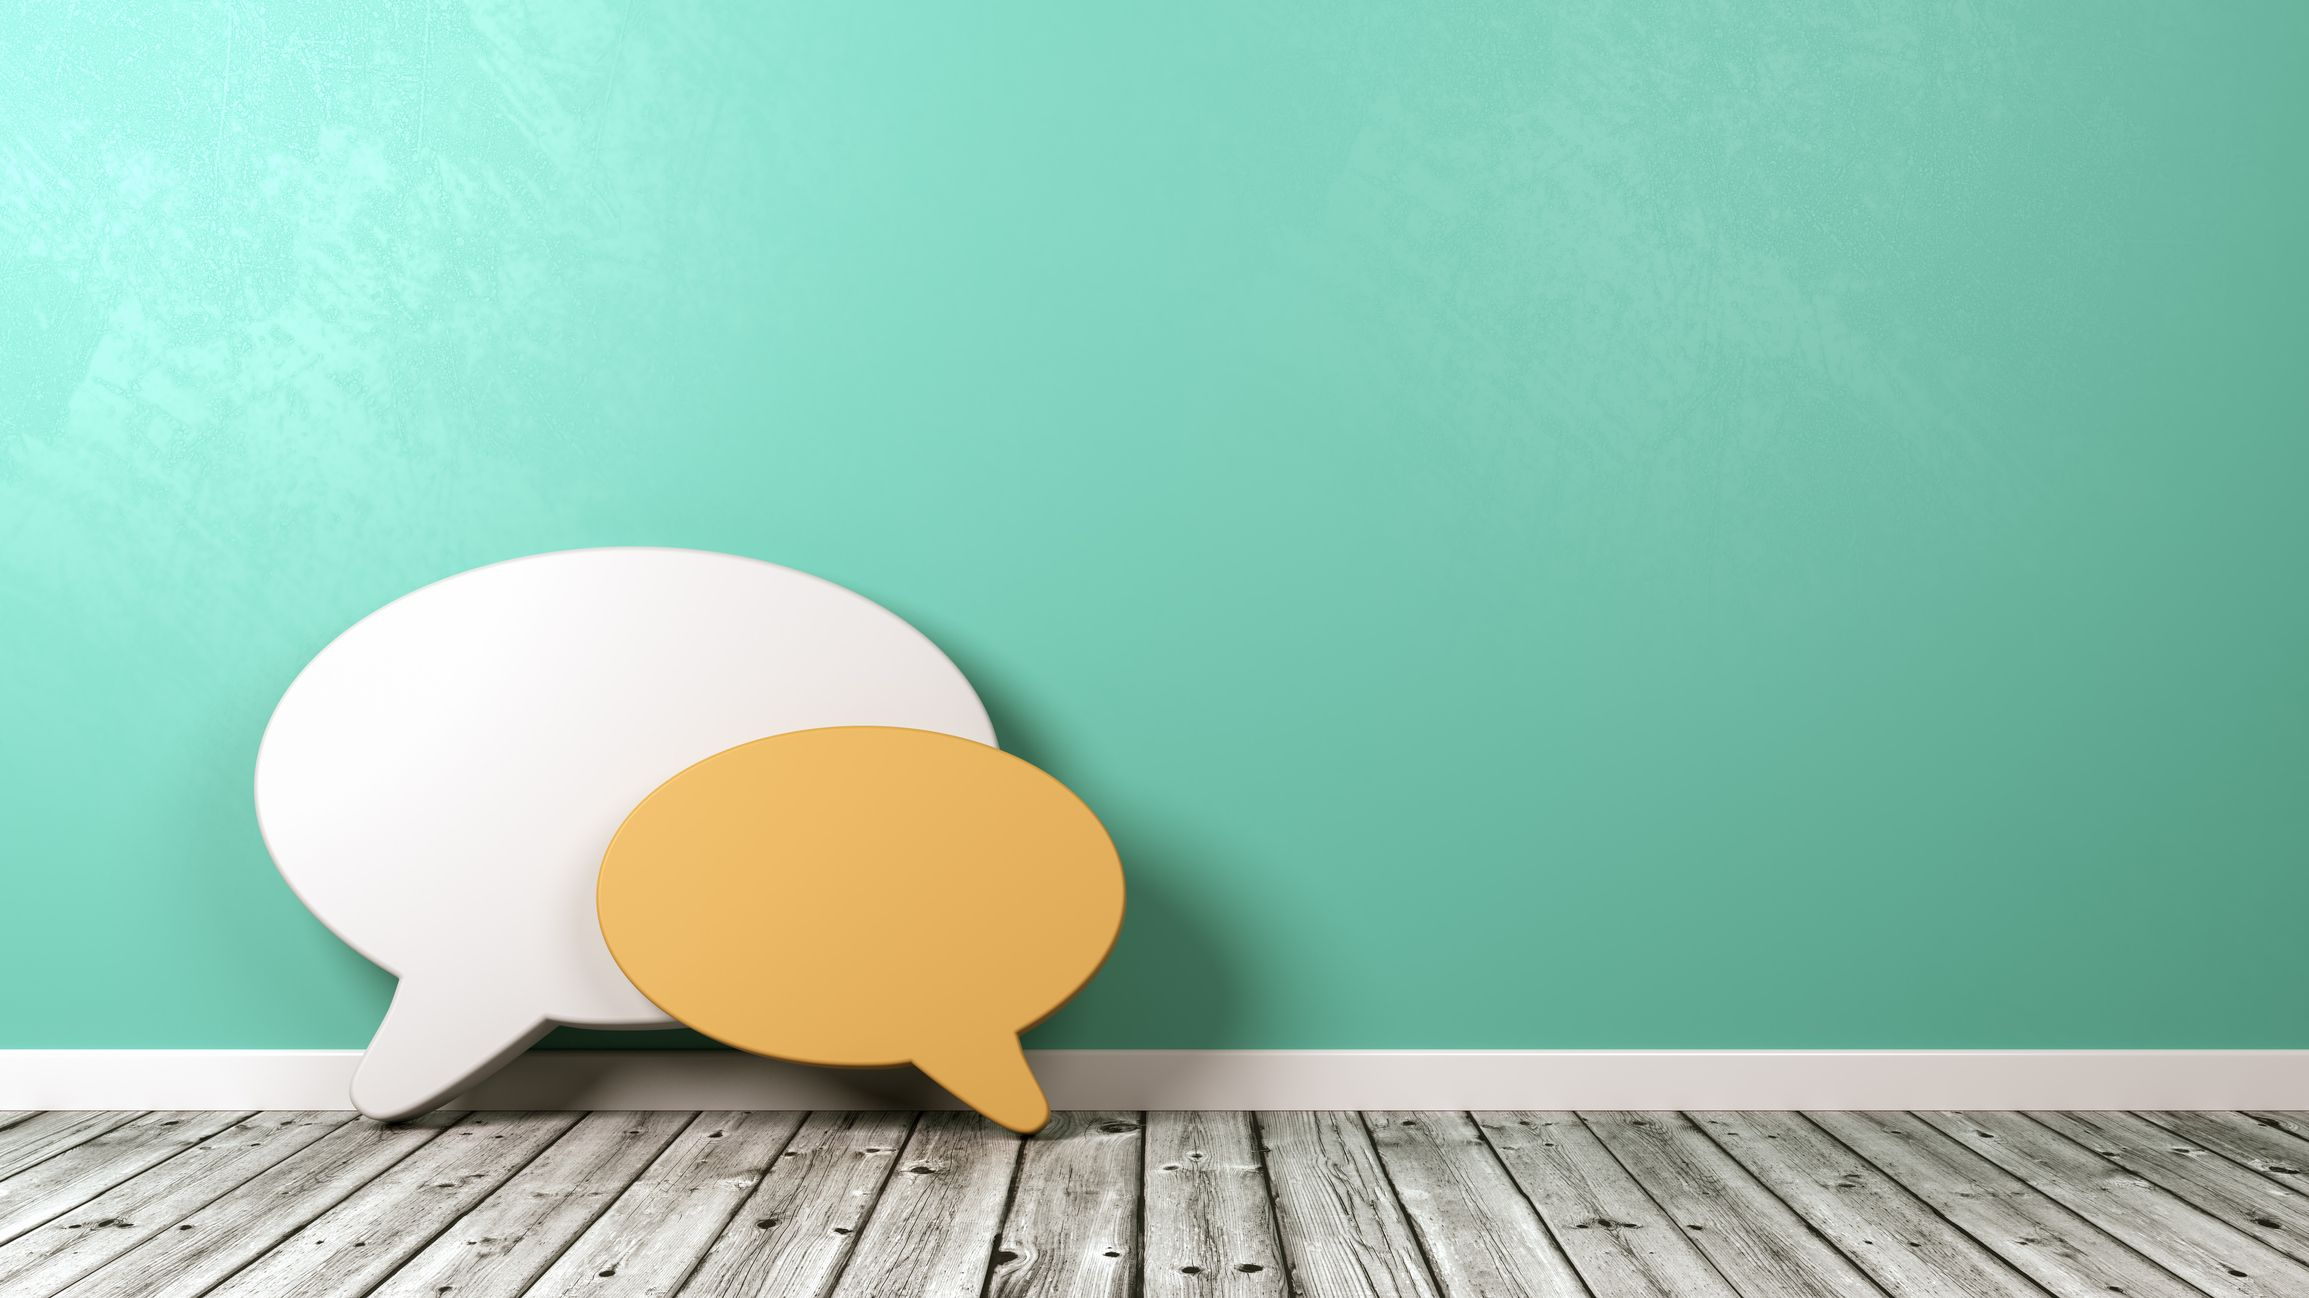 Speech Bubble Shapes Against Wall with Copyspace